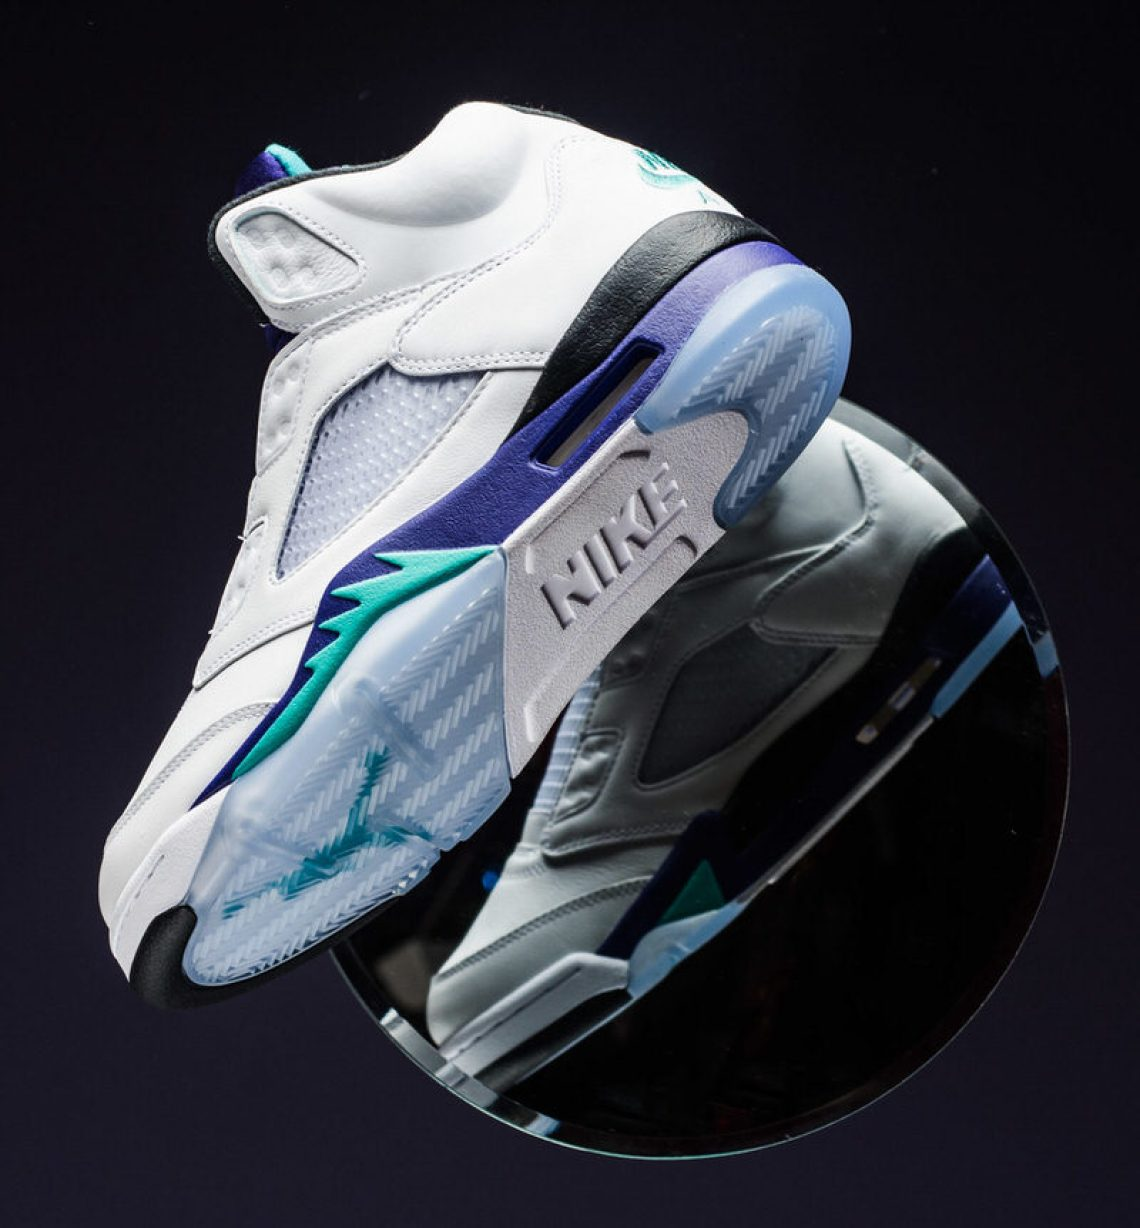 brand new c796d 1760a Nonetheless, the Air Jordan 5 in its original grape colorway remains as one  of the most iconic models and colorways in Air Jordan sneaker history, ...